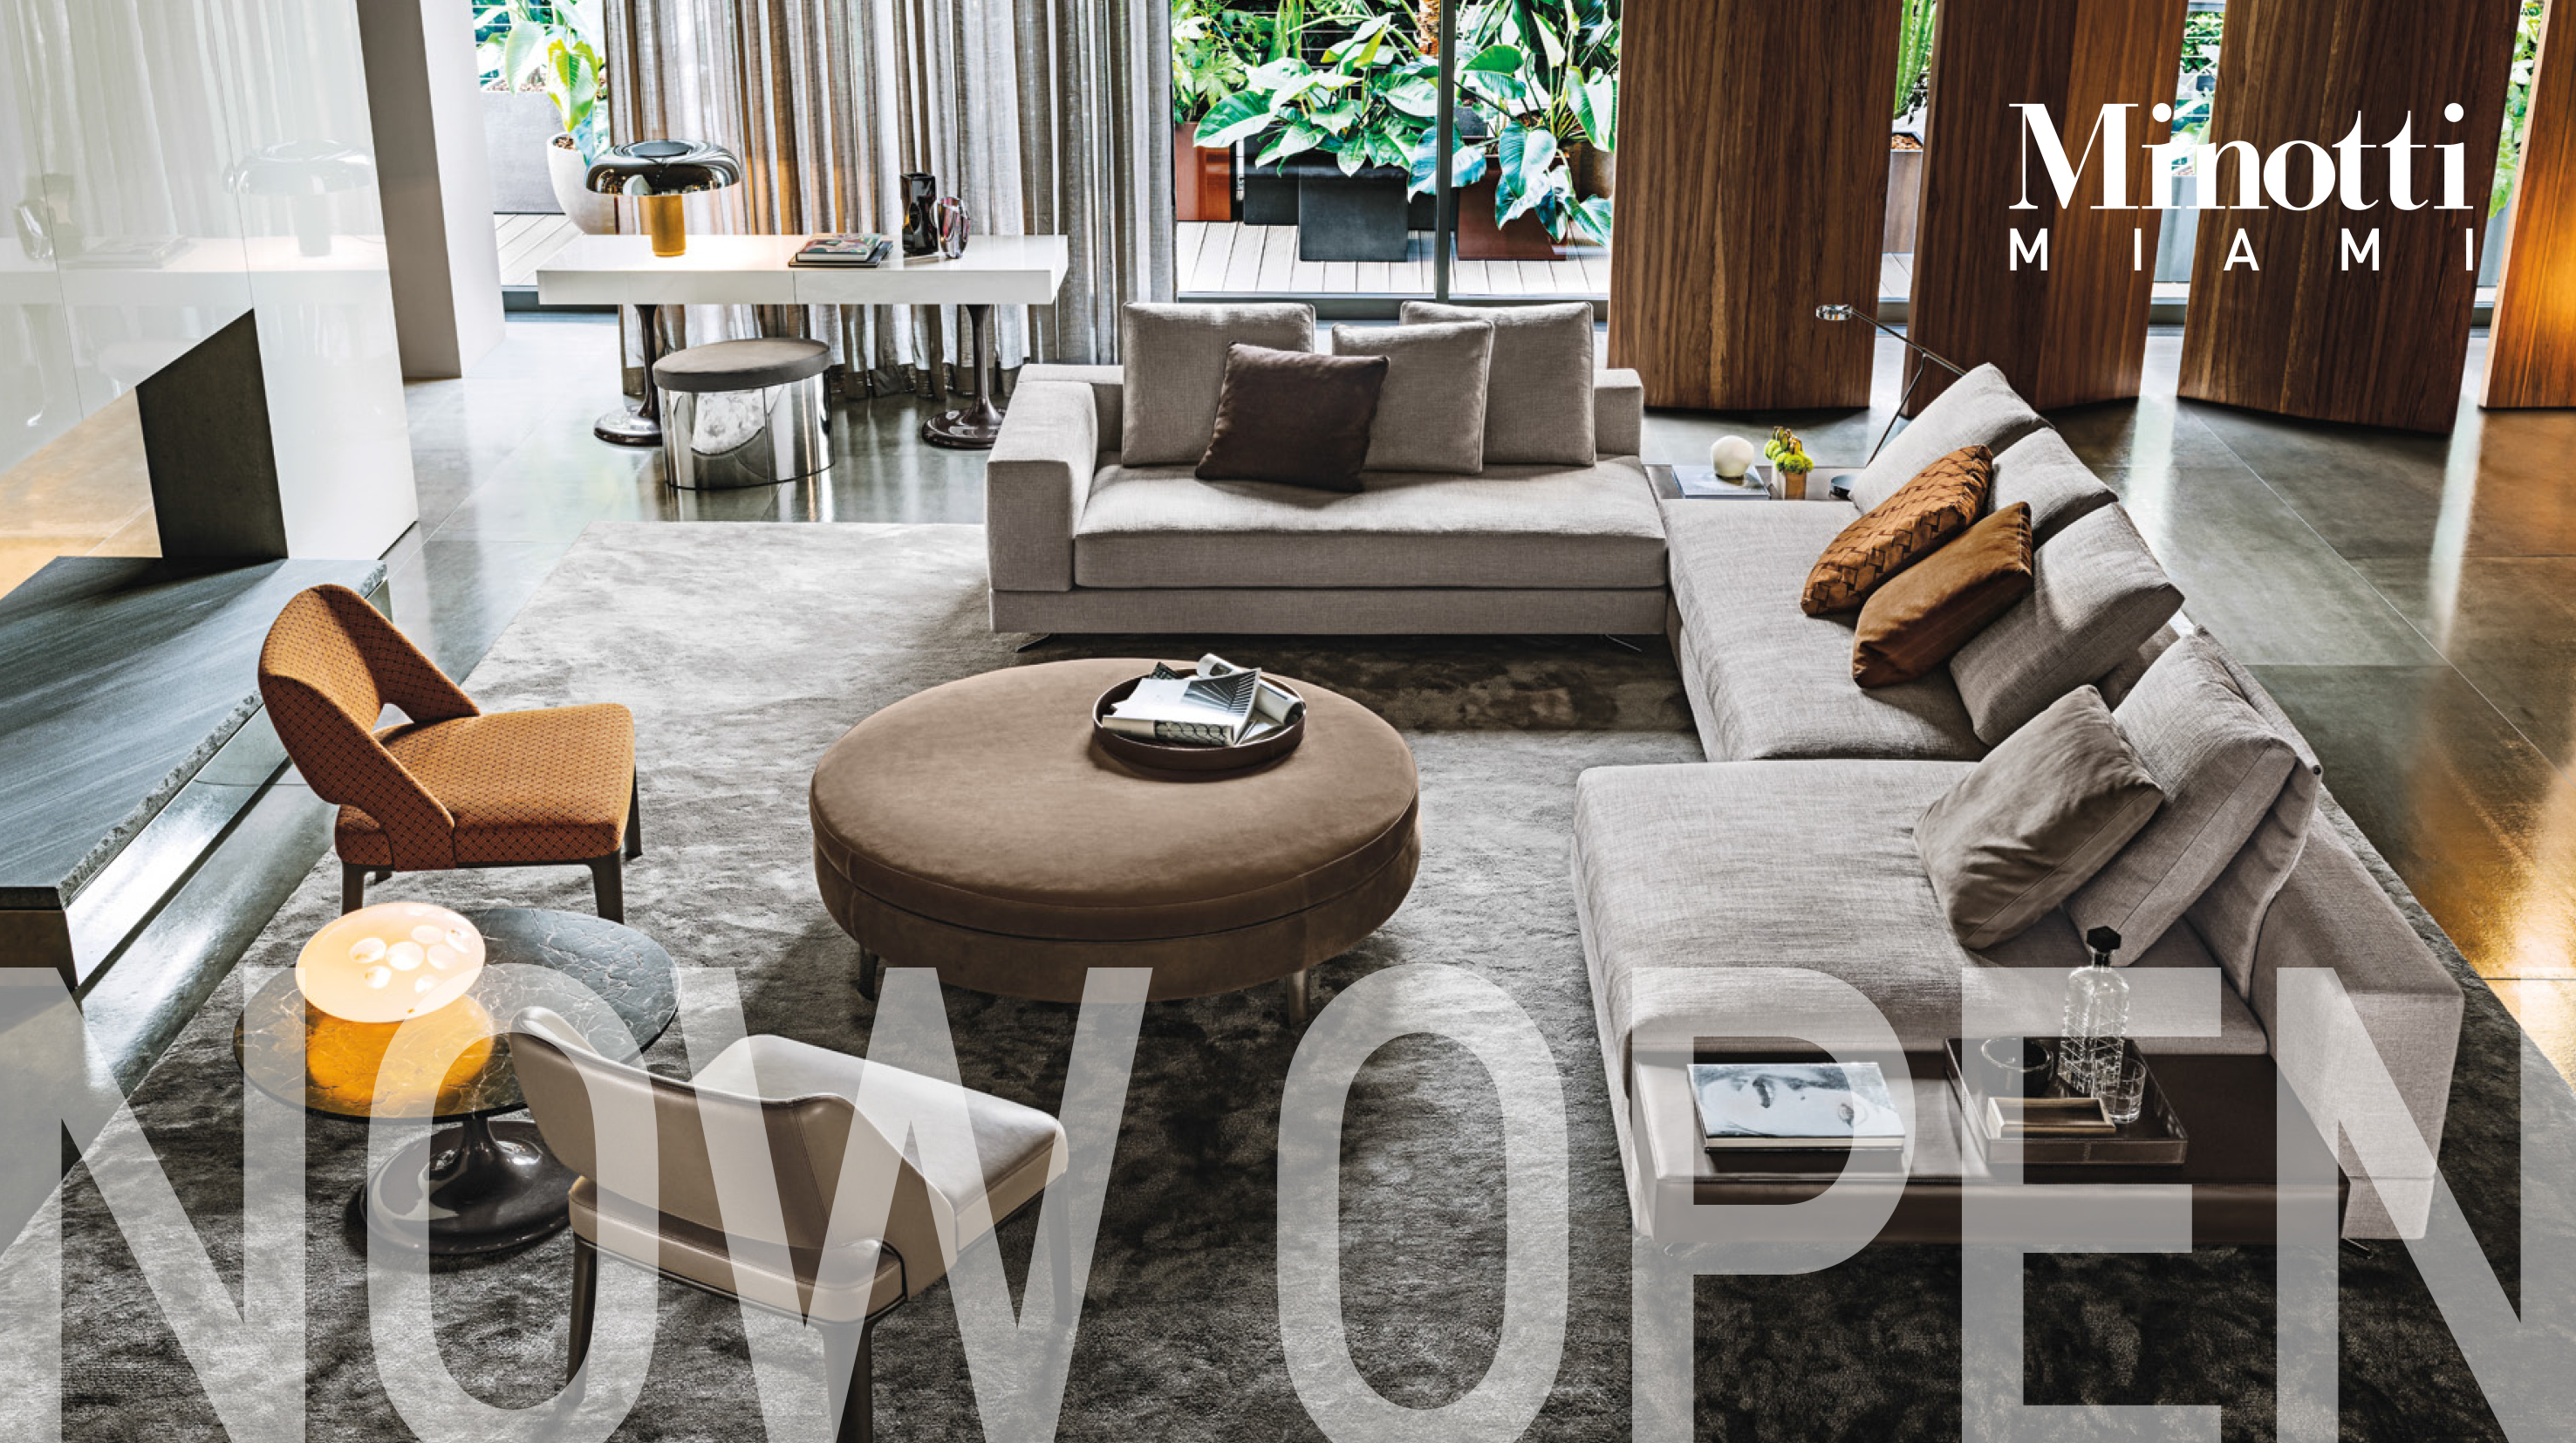 EXCLUSIVE MINOTTI MIAMI SHOWROOM NOW OPEN